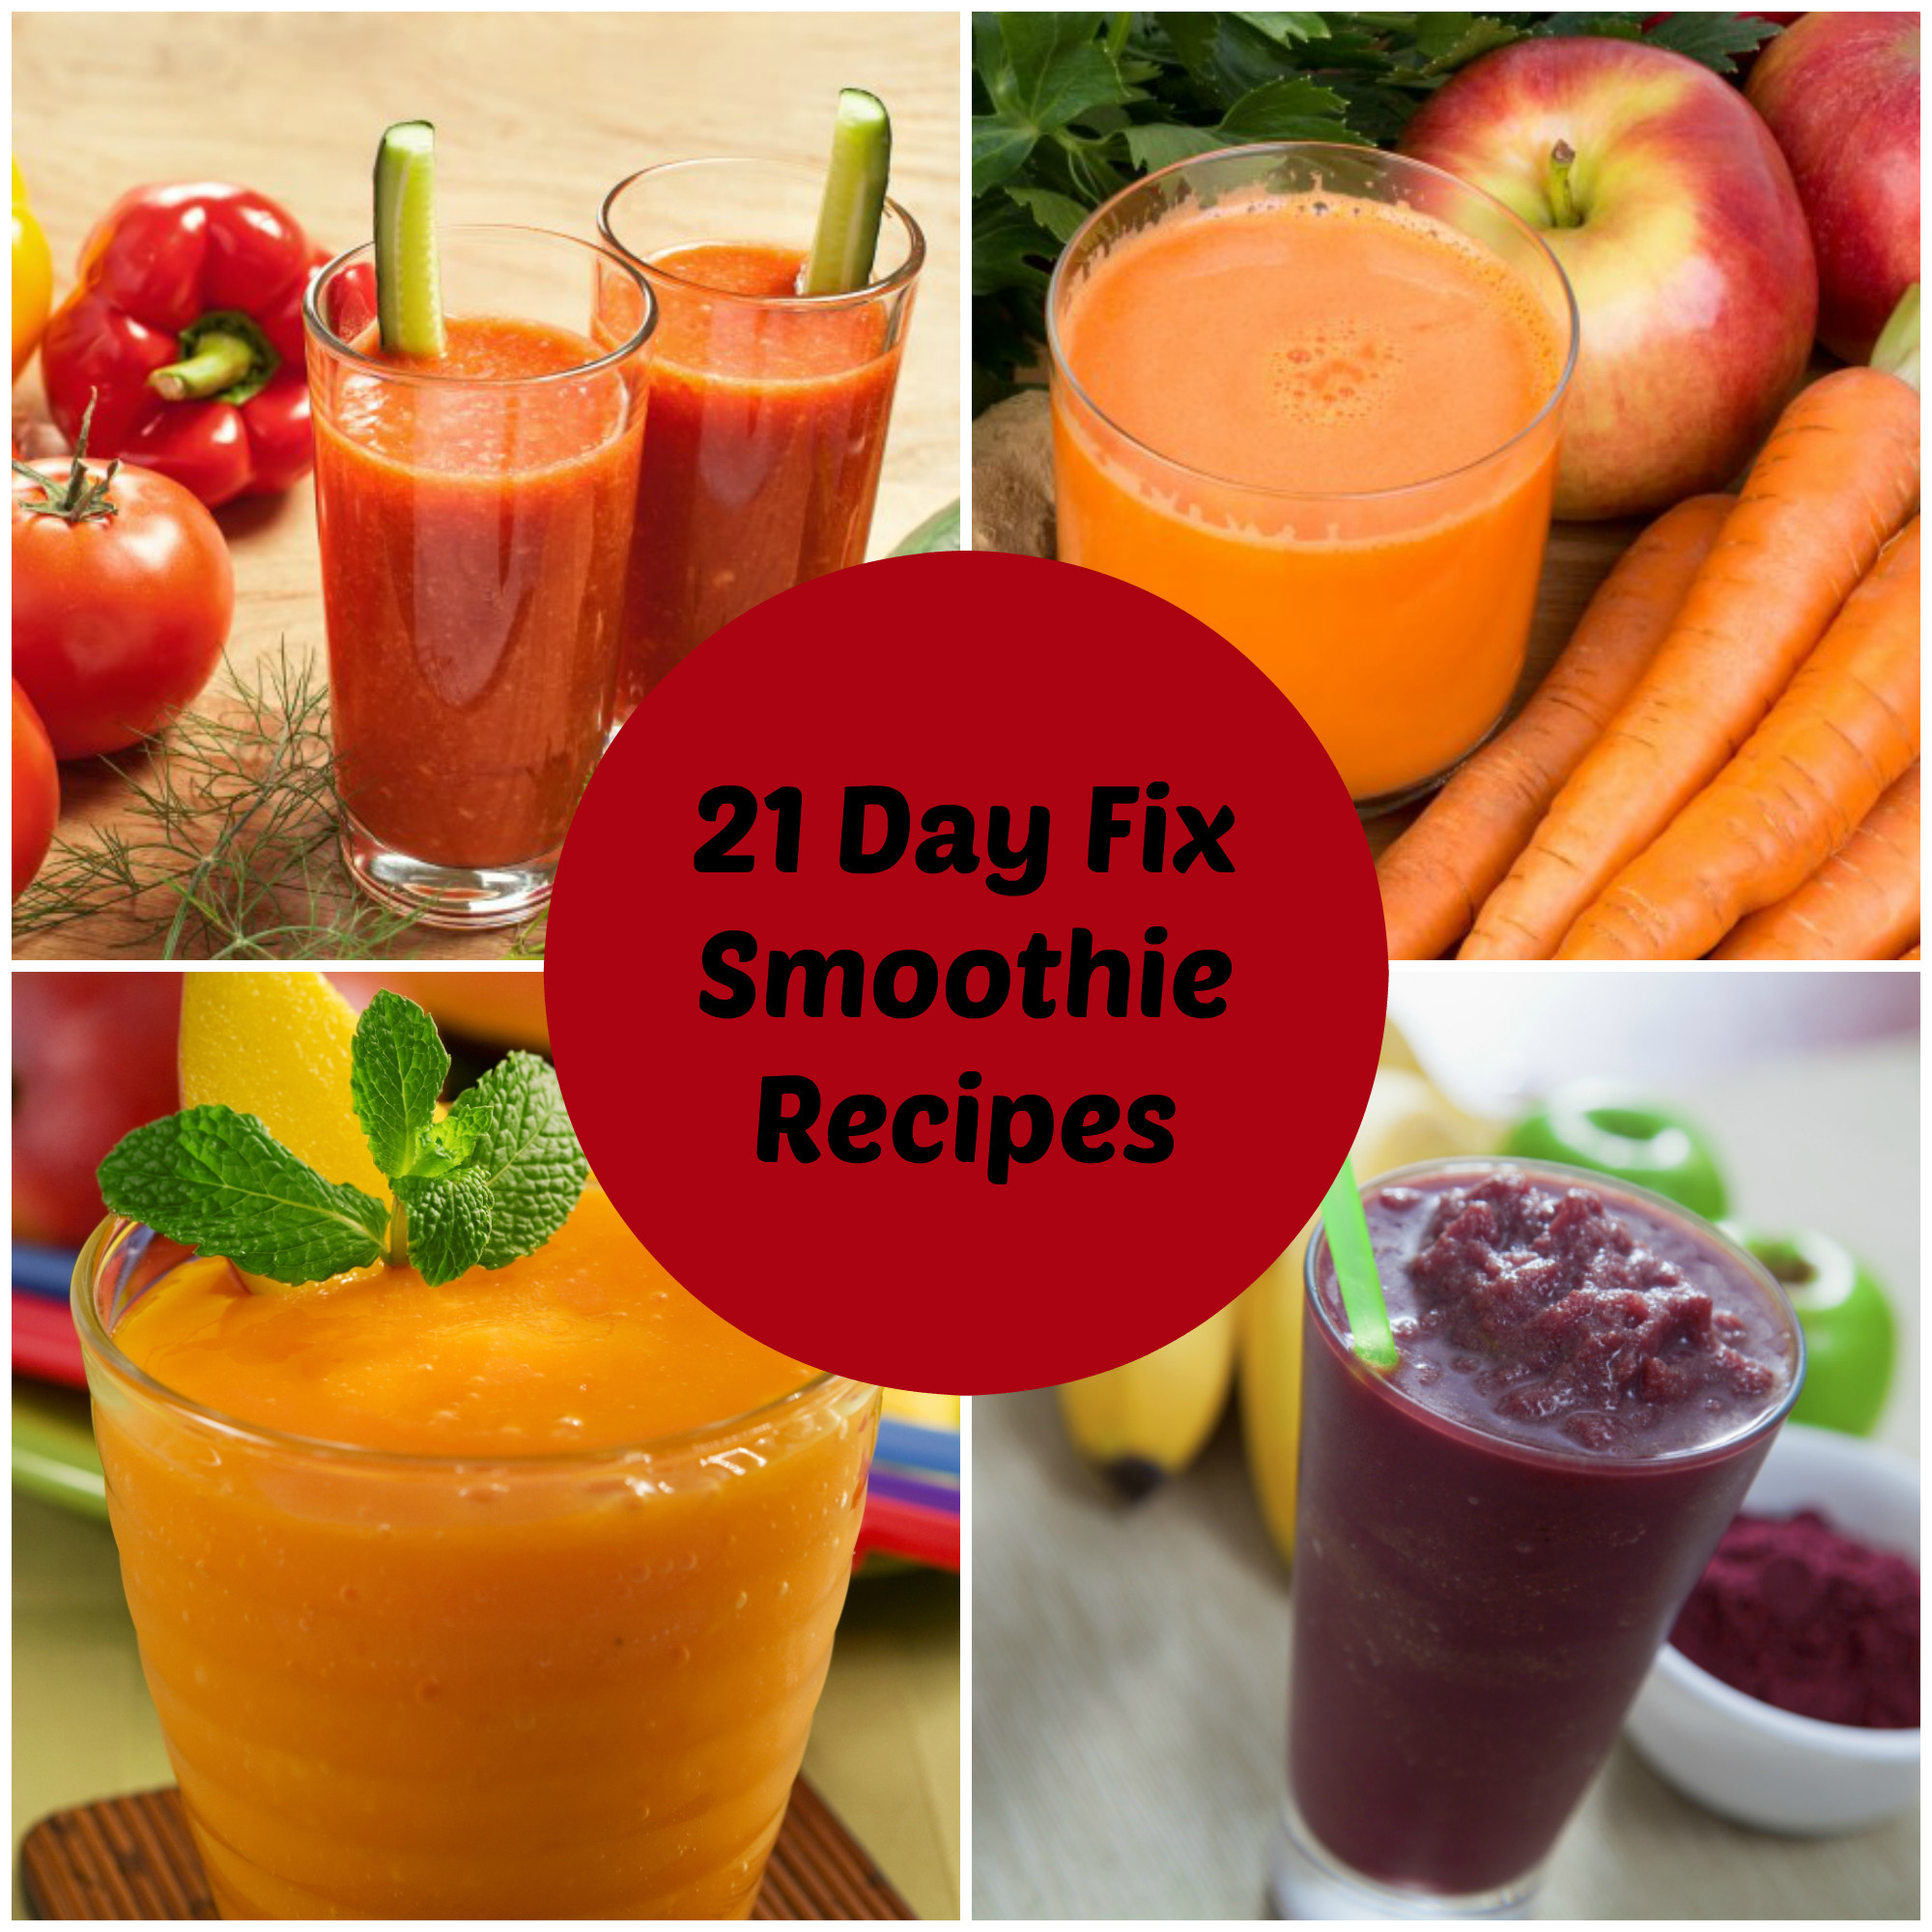 Diet Smoothie Recipes  How to Make Smoothies for the 21 Day Fix All Nutribullet